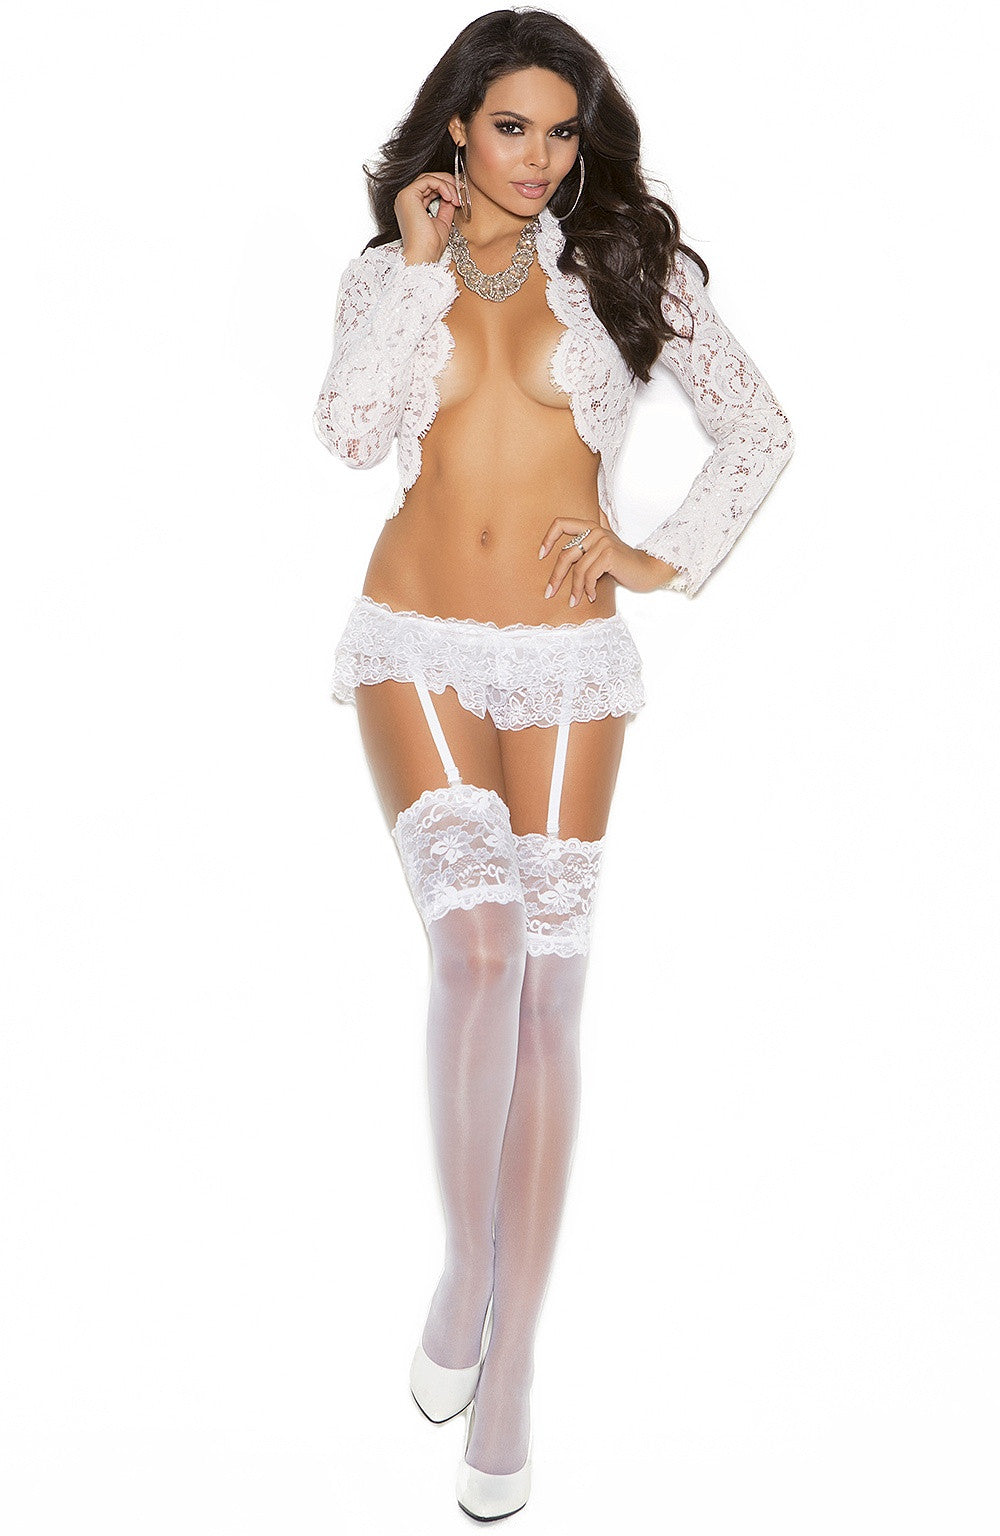 EM-1836 White weddings stockings - Sexylingerieland